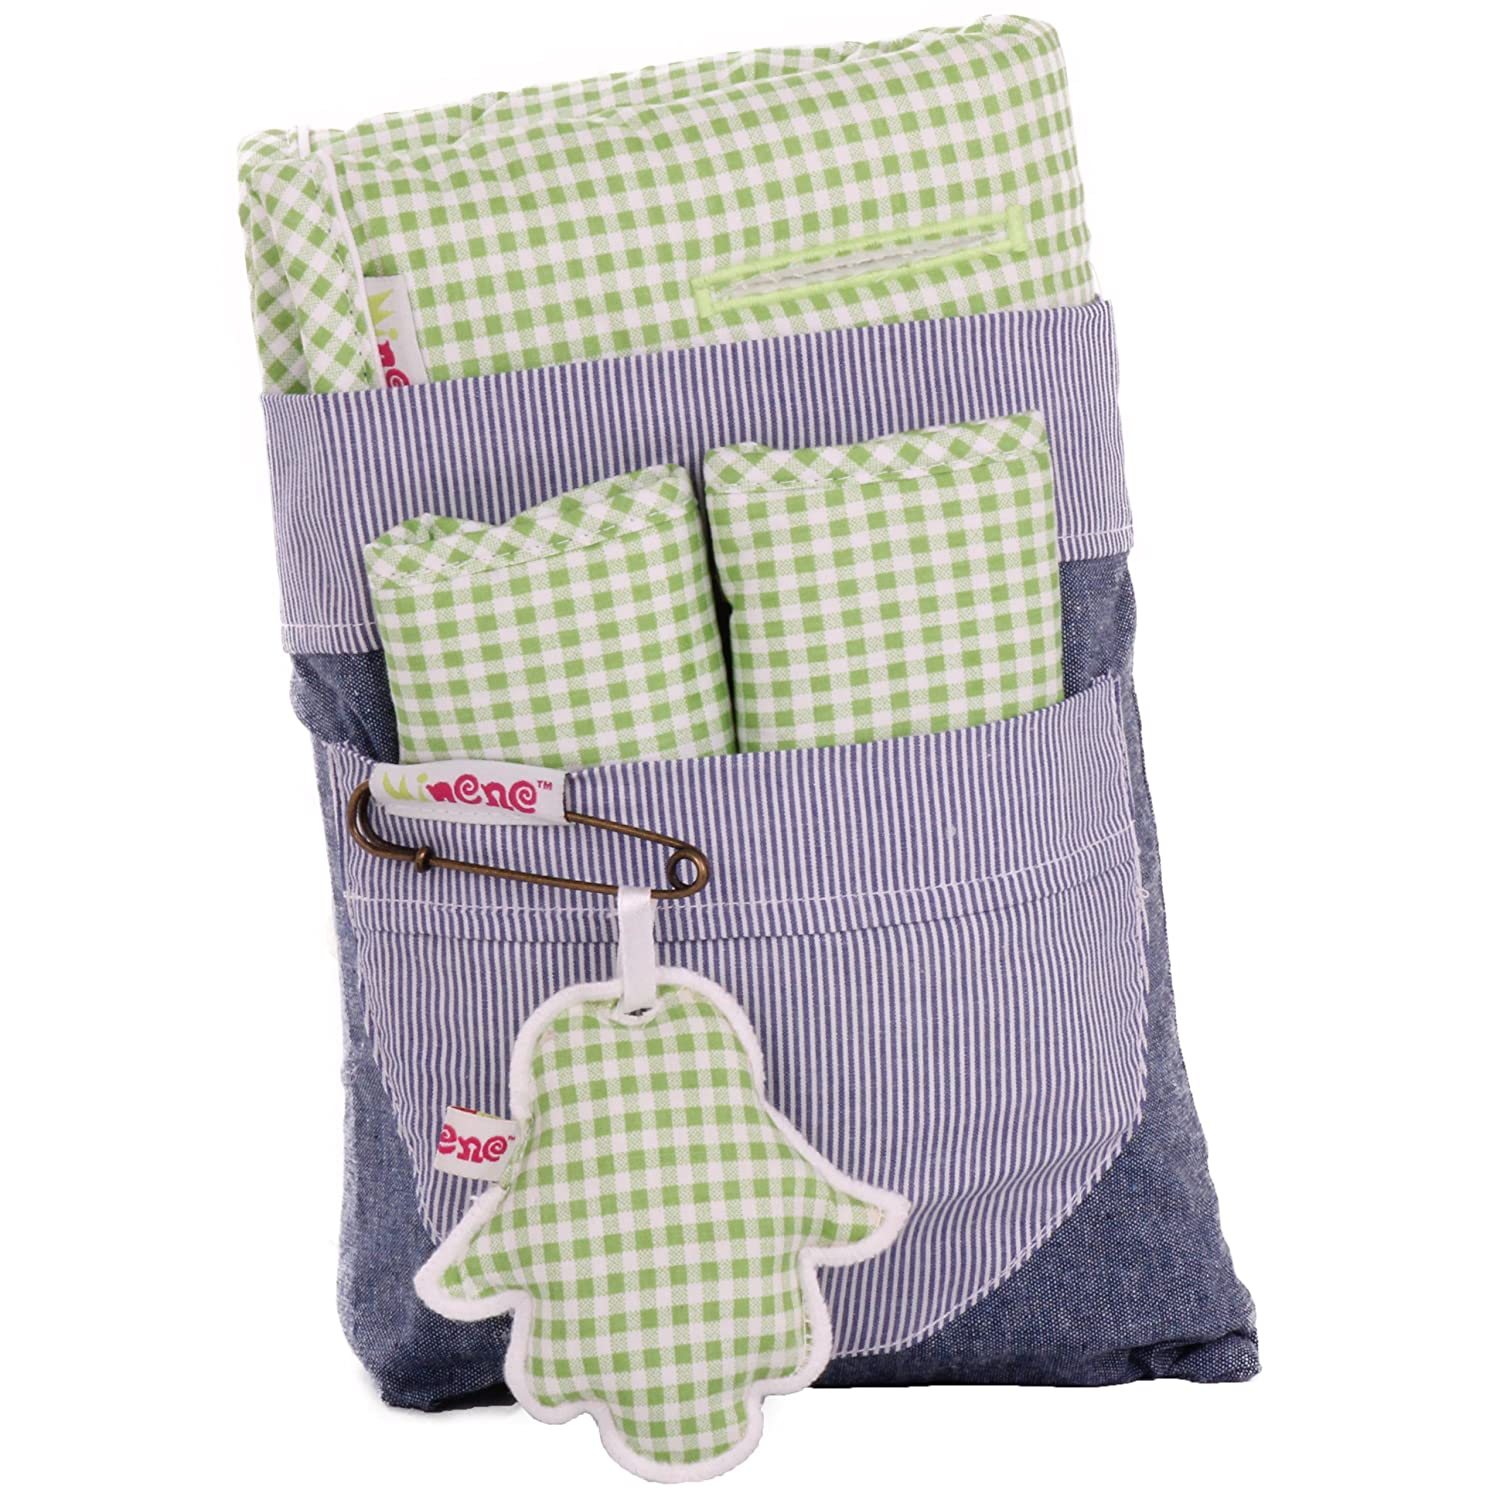 Green Gingham Minene Universal Pushchair Stroller Pram Buggy Liner Footmuff Cosytoes Car Seat with safety straps